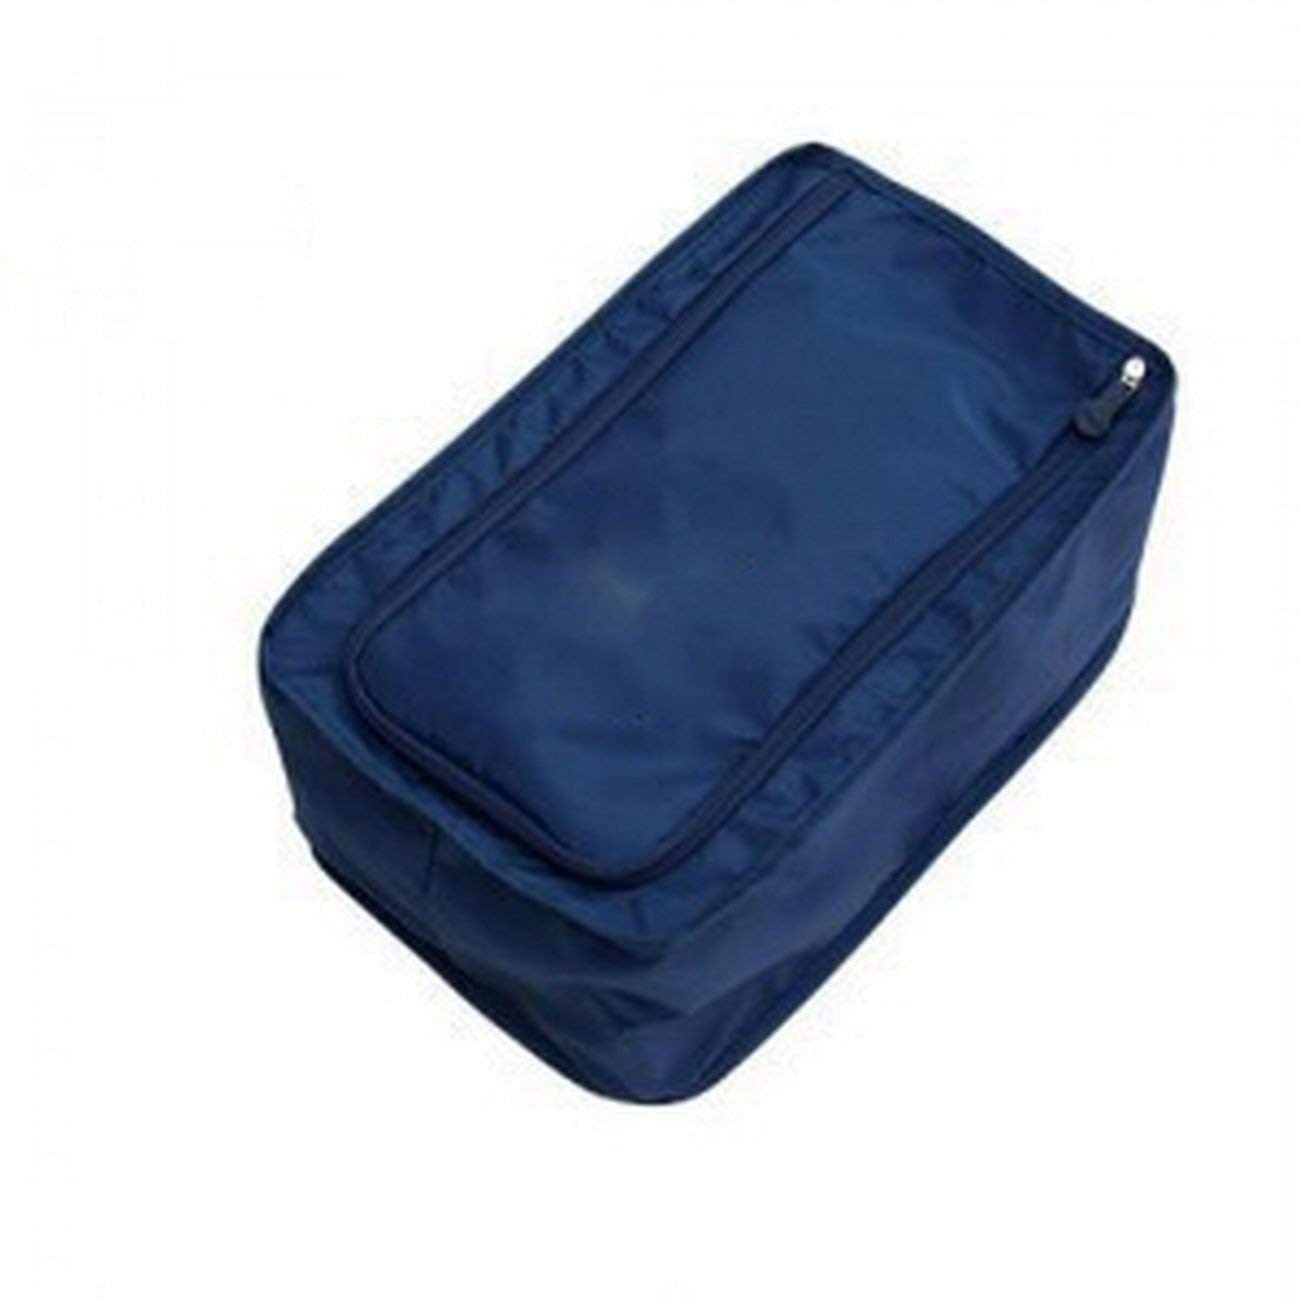 Clothing & Wardrobe Storage Laundry Shoe Travel Pouch Portable Tote Drawstring Storage Bag Organizer Rich And Magnificent